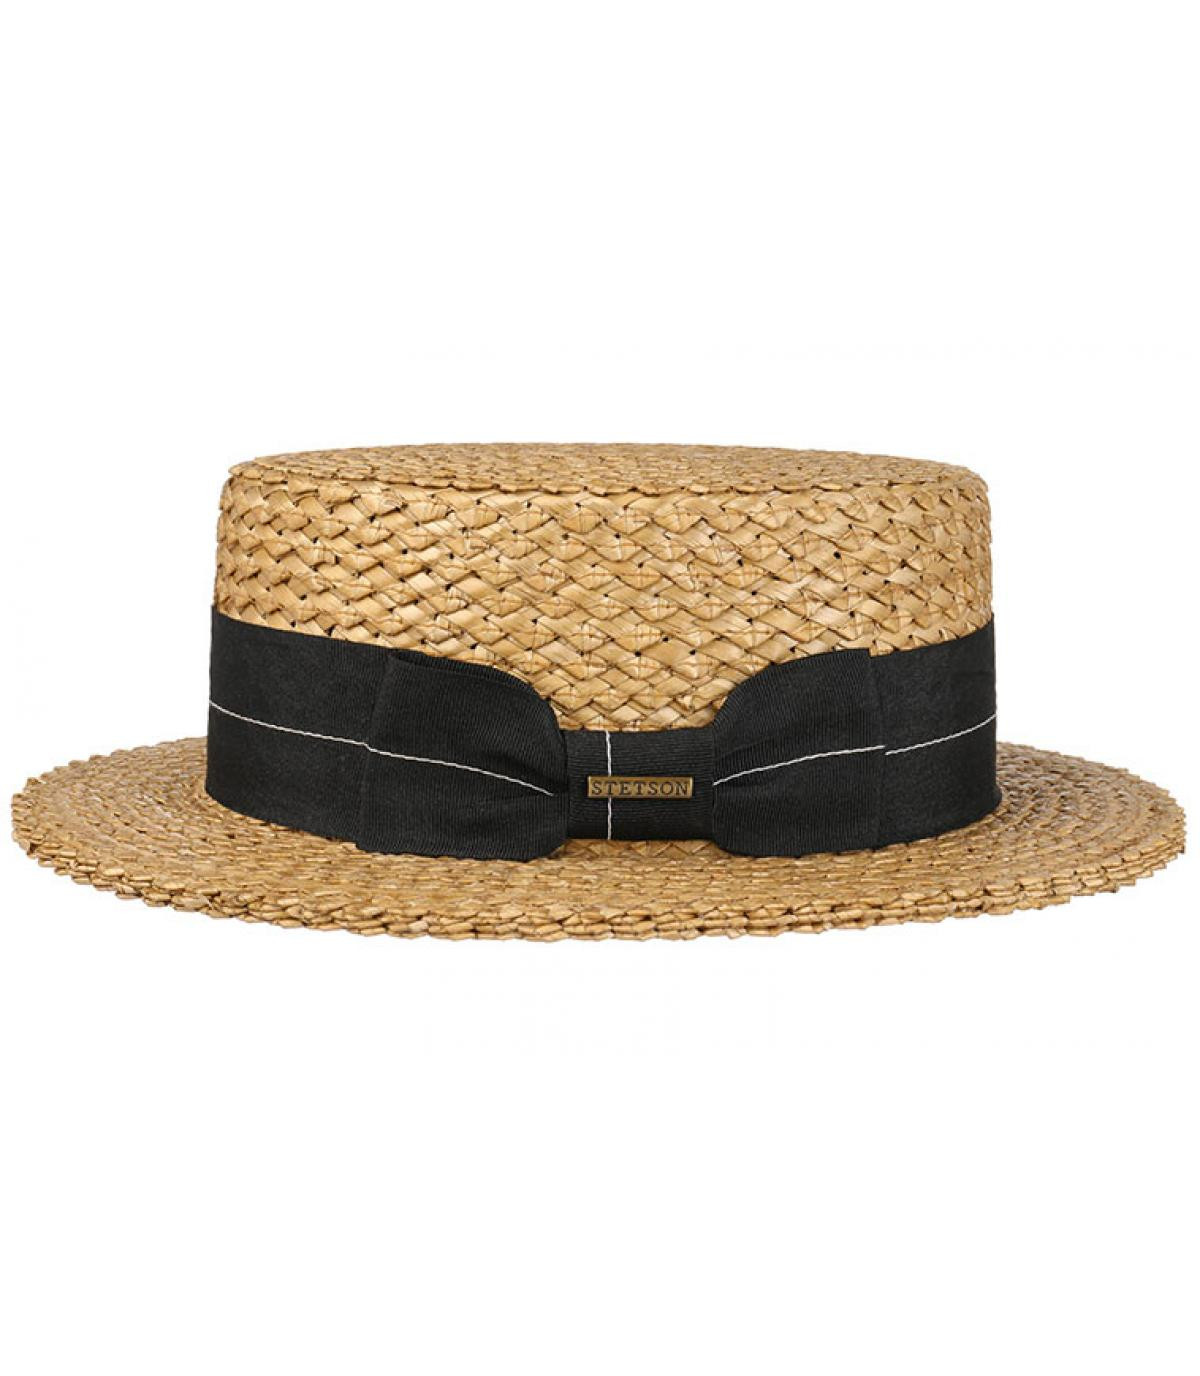 3e7d58a06d617 Stetson straw boater hat - Boater vintage wheat by Stetson. Headict